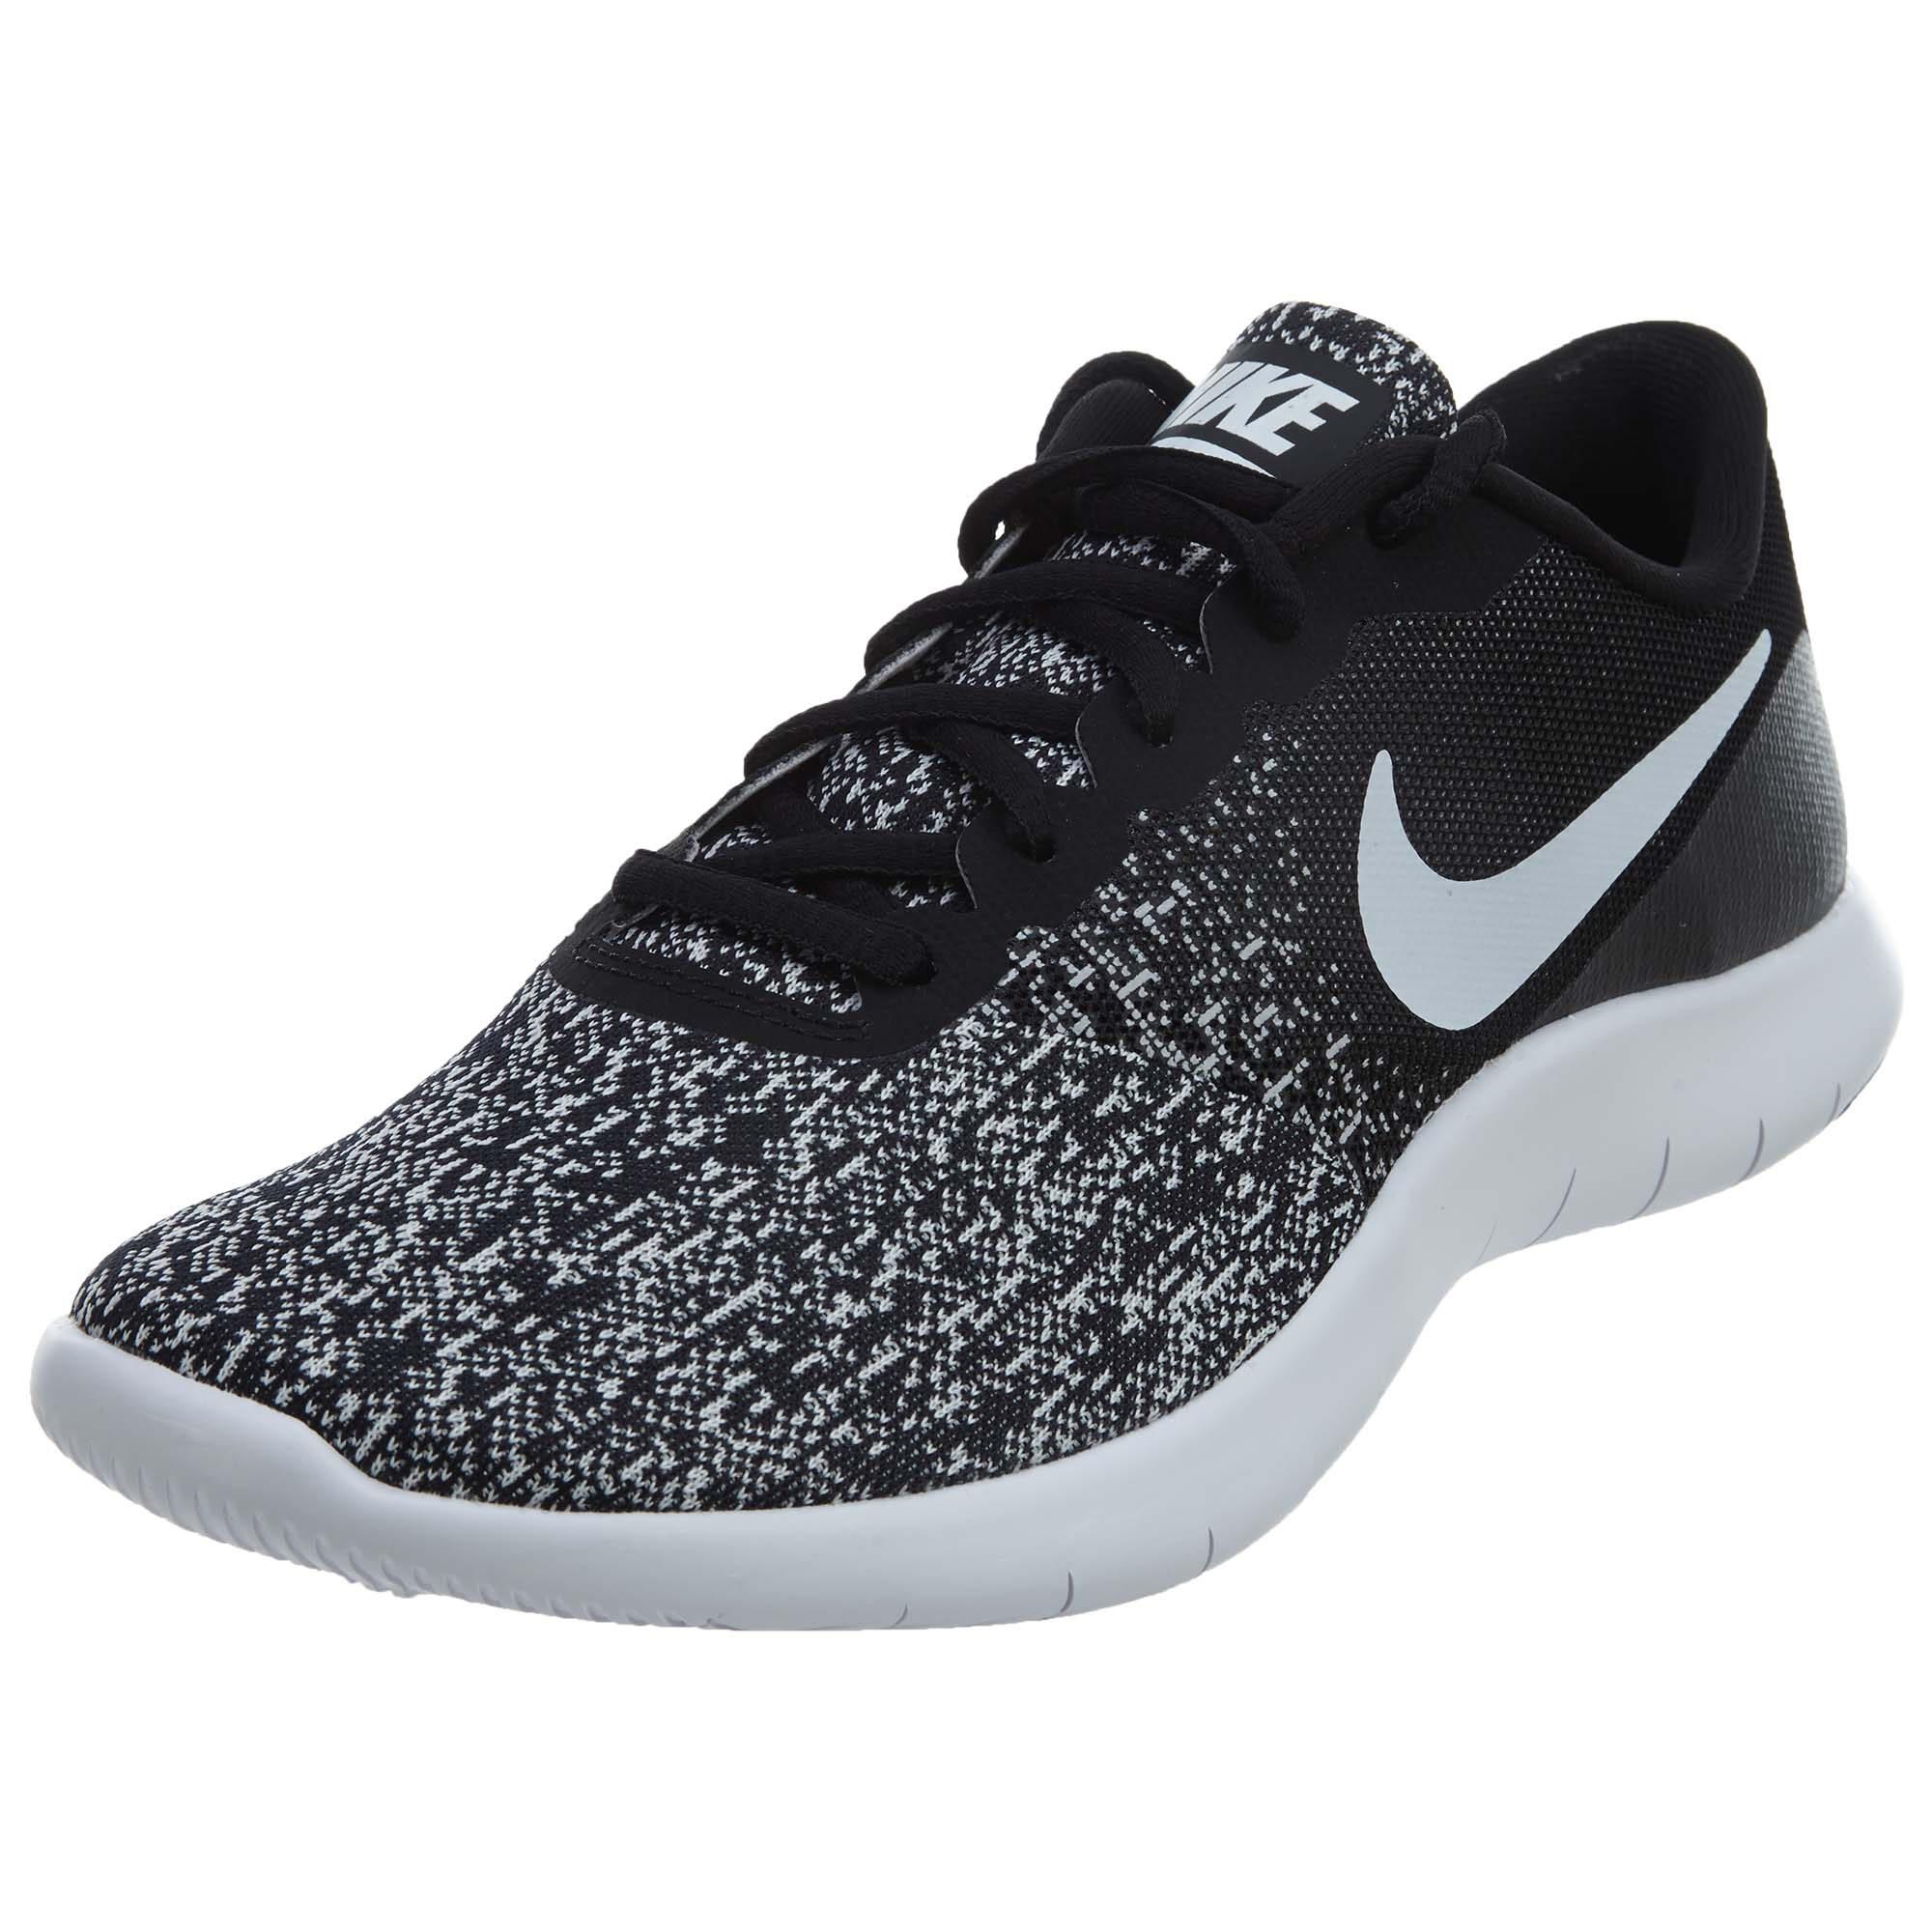 2623d4c6a936 Details about Nike Womens Flex Contact Running Shoes 908995-002